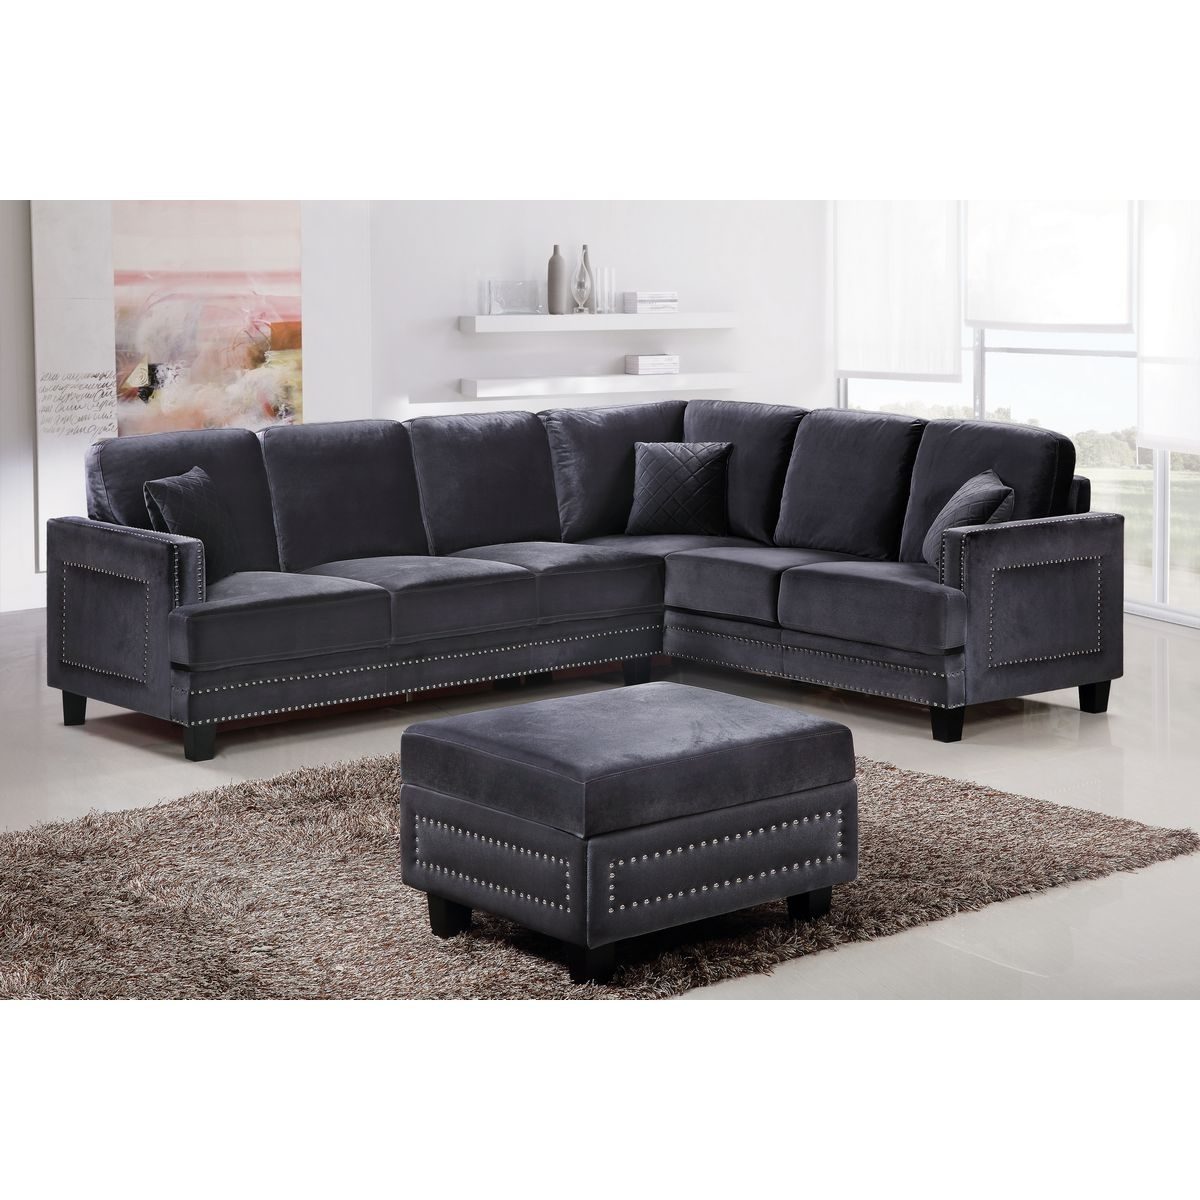 Sectional Sofa With Nailhead Trim Meridian Furniture 655Gry Ferrara Throughout Sectional Sofas With Nailheads (View 2 of 10)